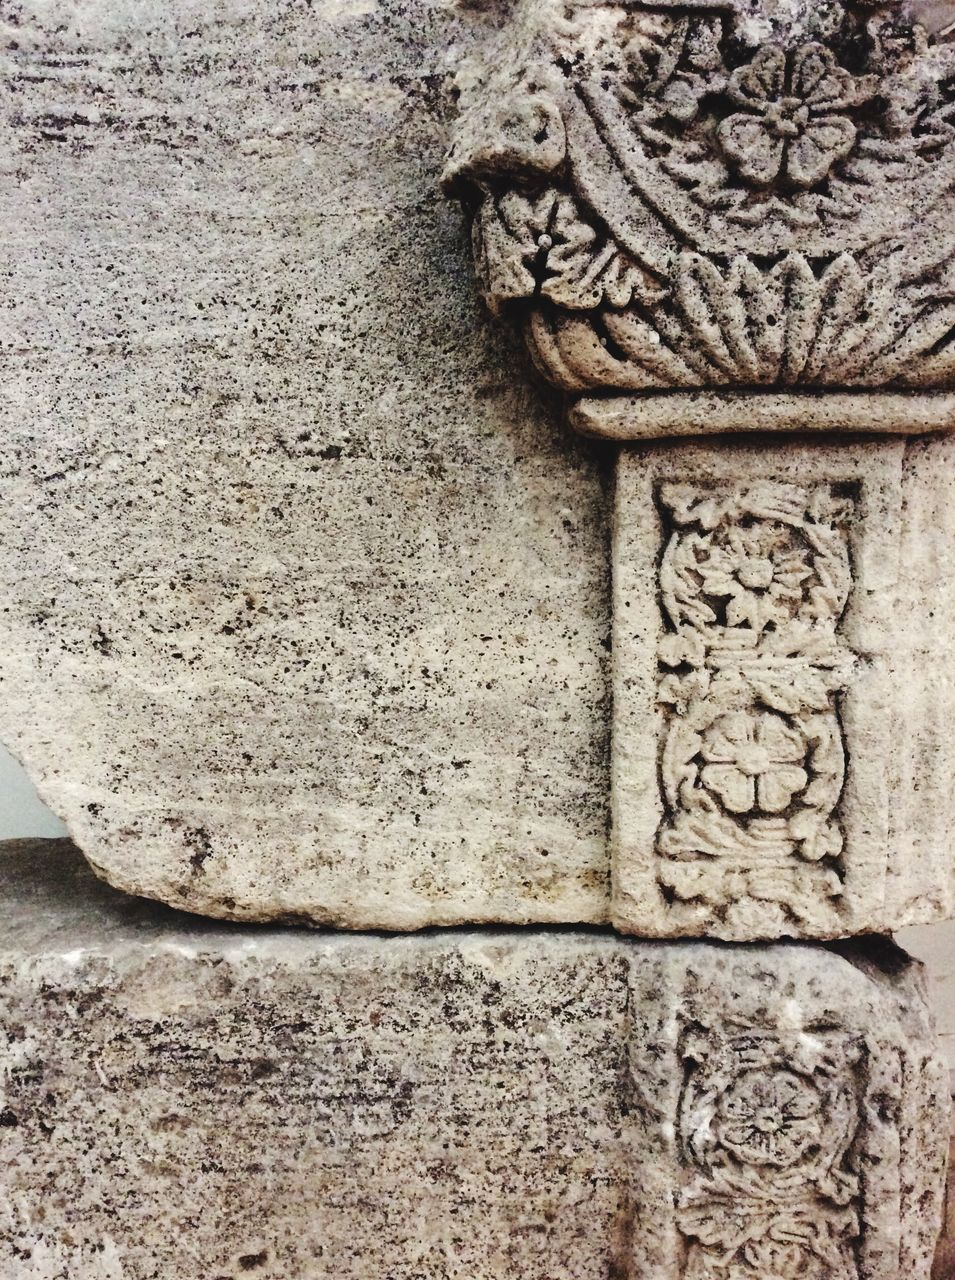 Close-Up Of Carving On Old Ruined Wall